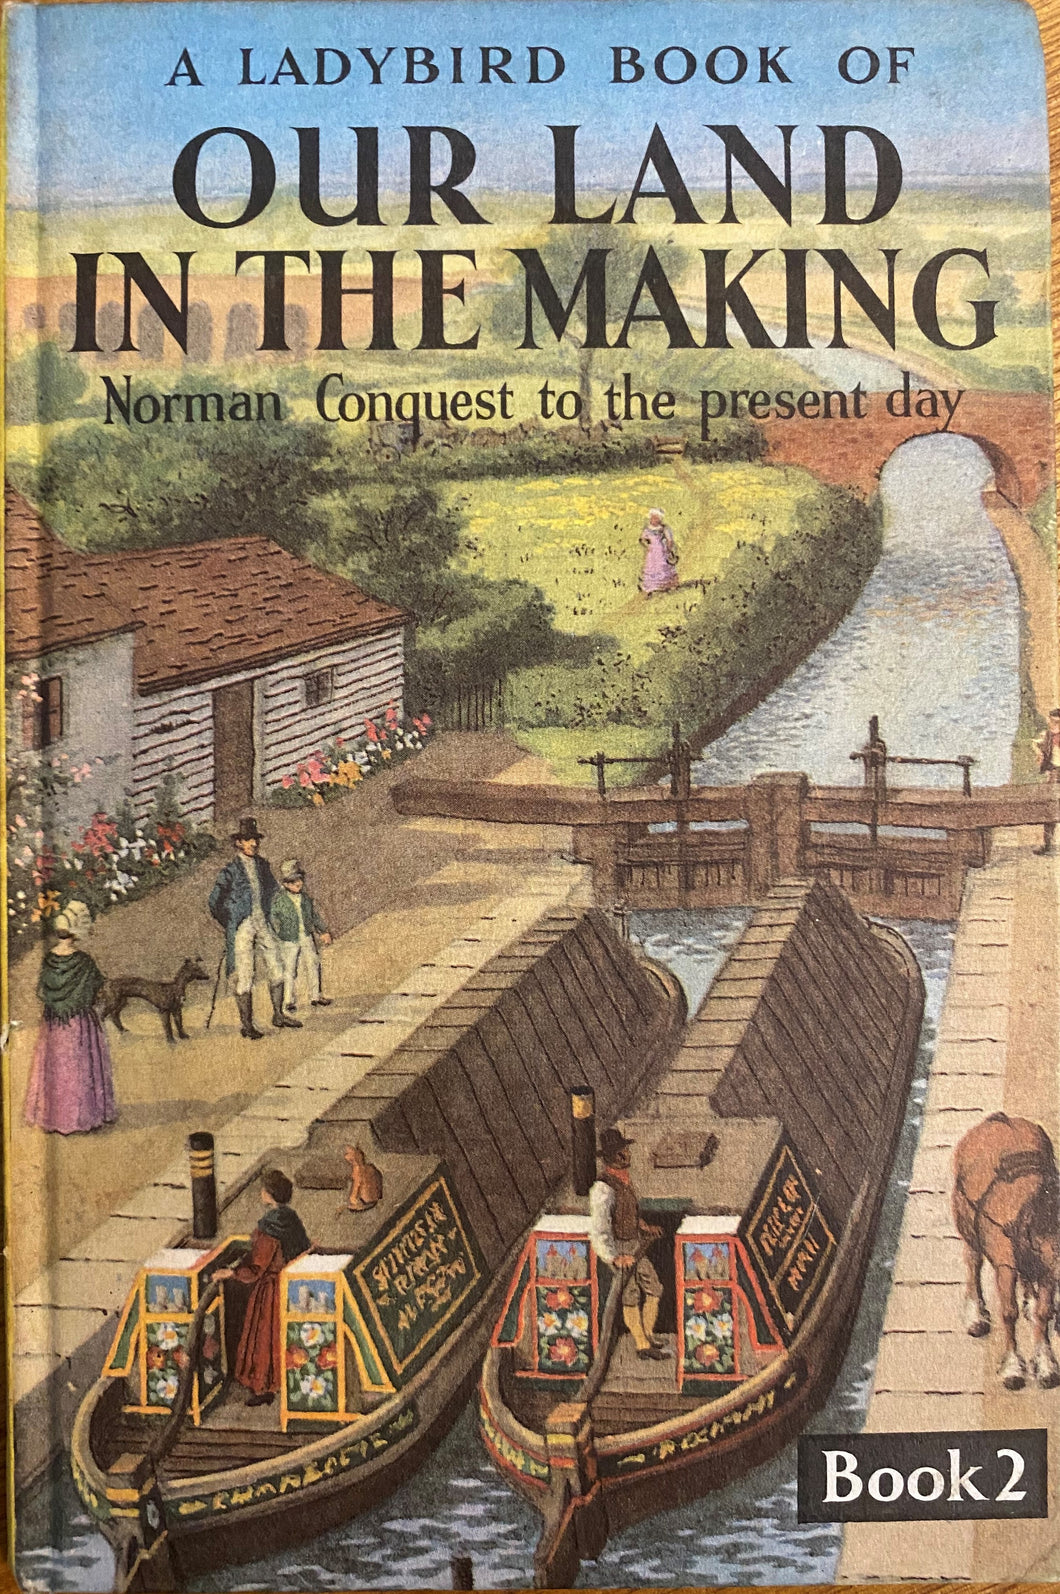 Our Land in the Making (Norman Conquest to the present day) Book 2 (1965-February 1971)